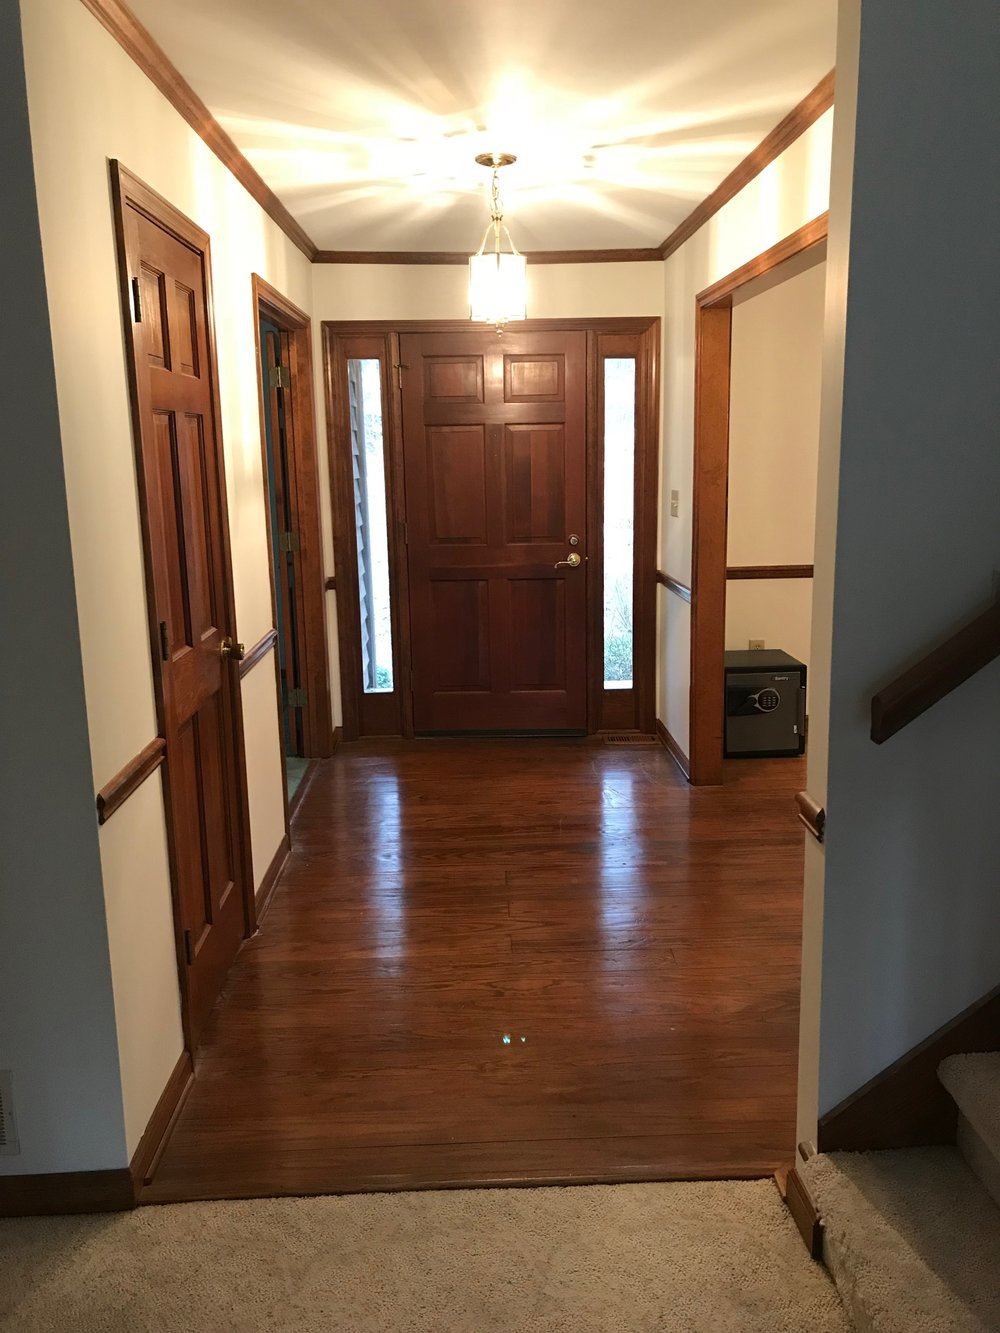 What we had - Stained 6 Panel Doors, Trim, Crown, Baseboards & Chair Rail Galore